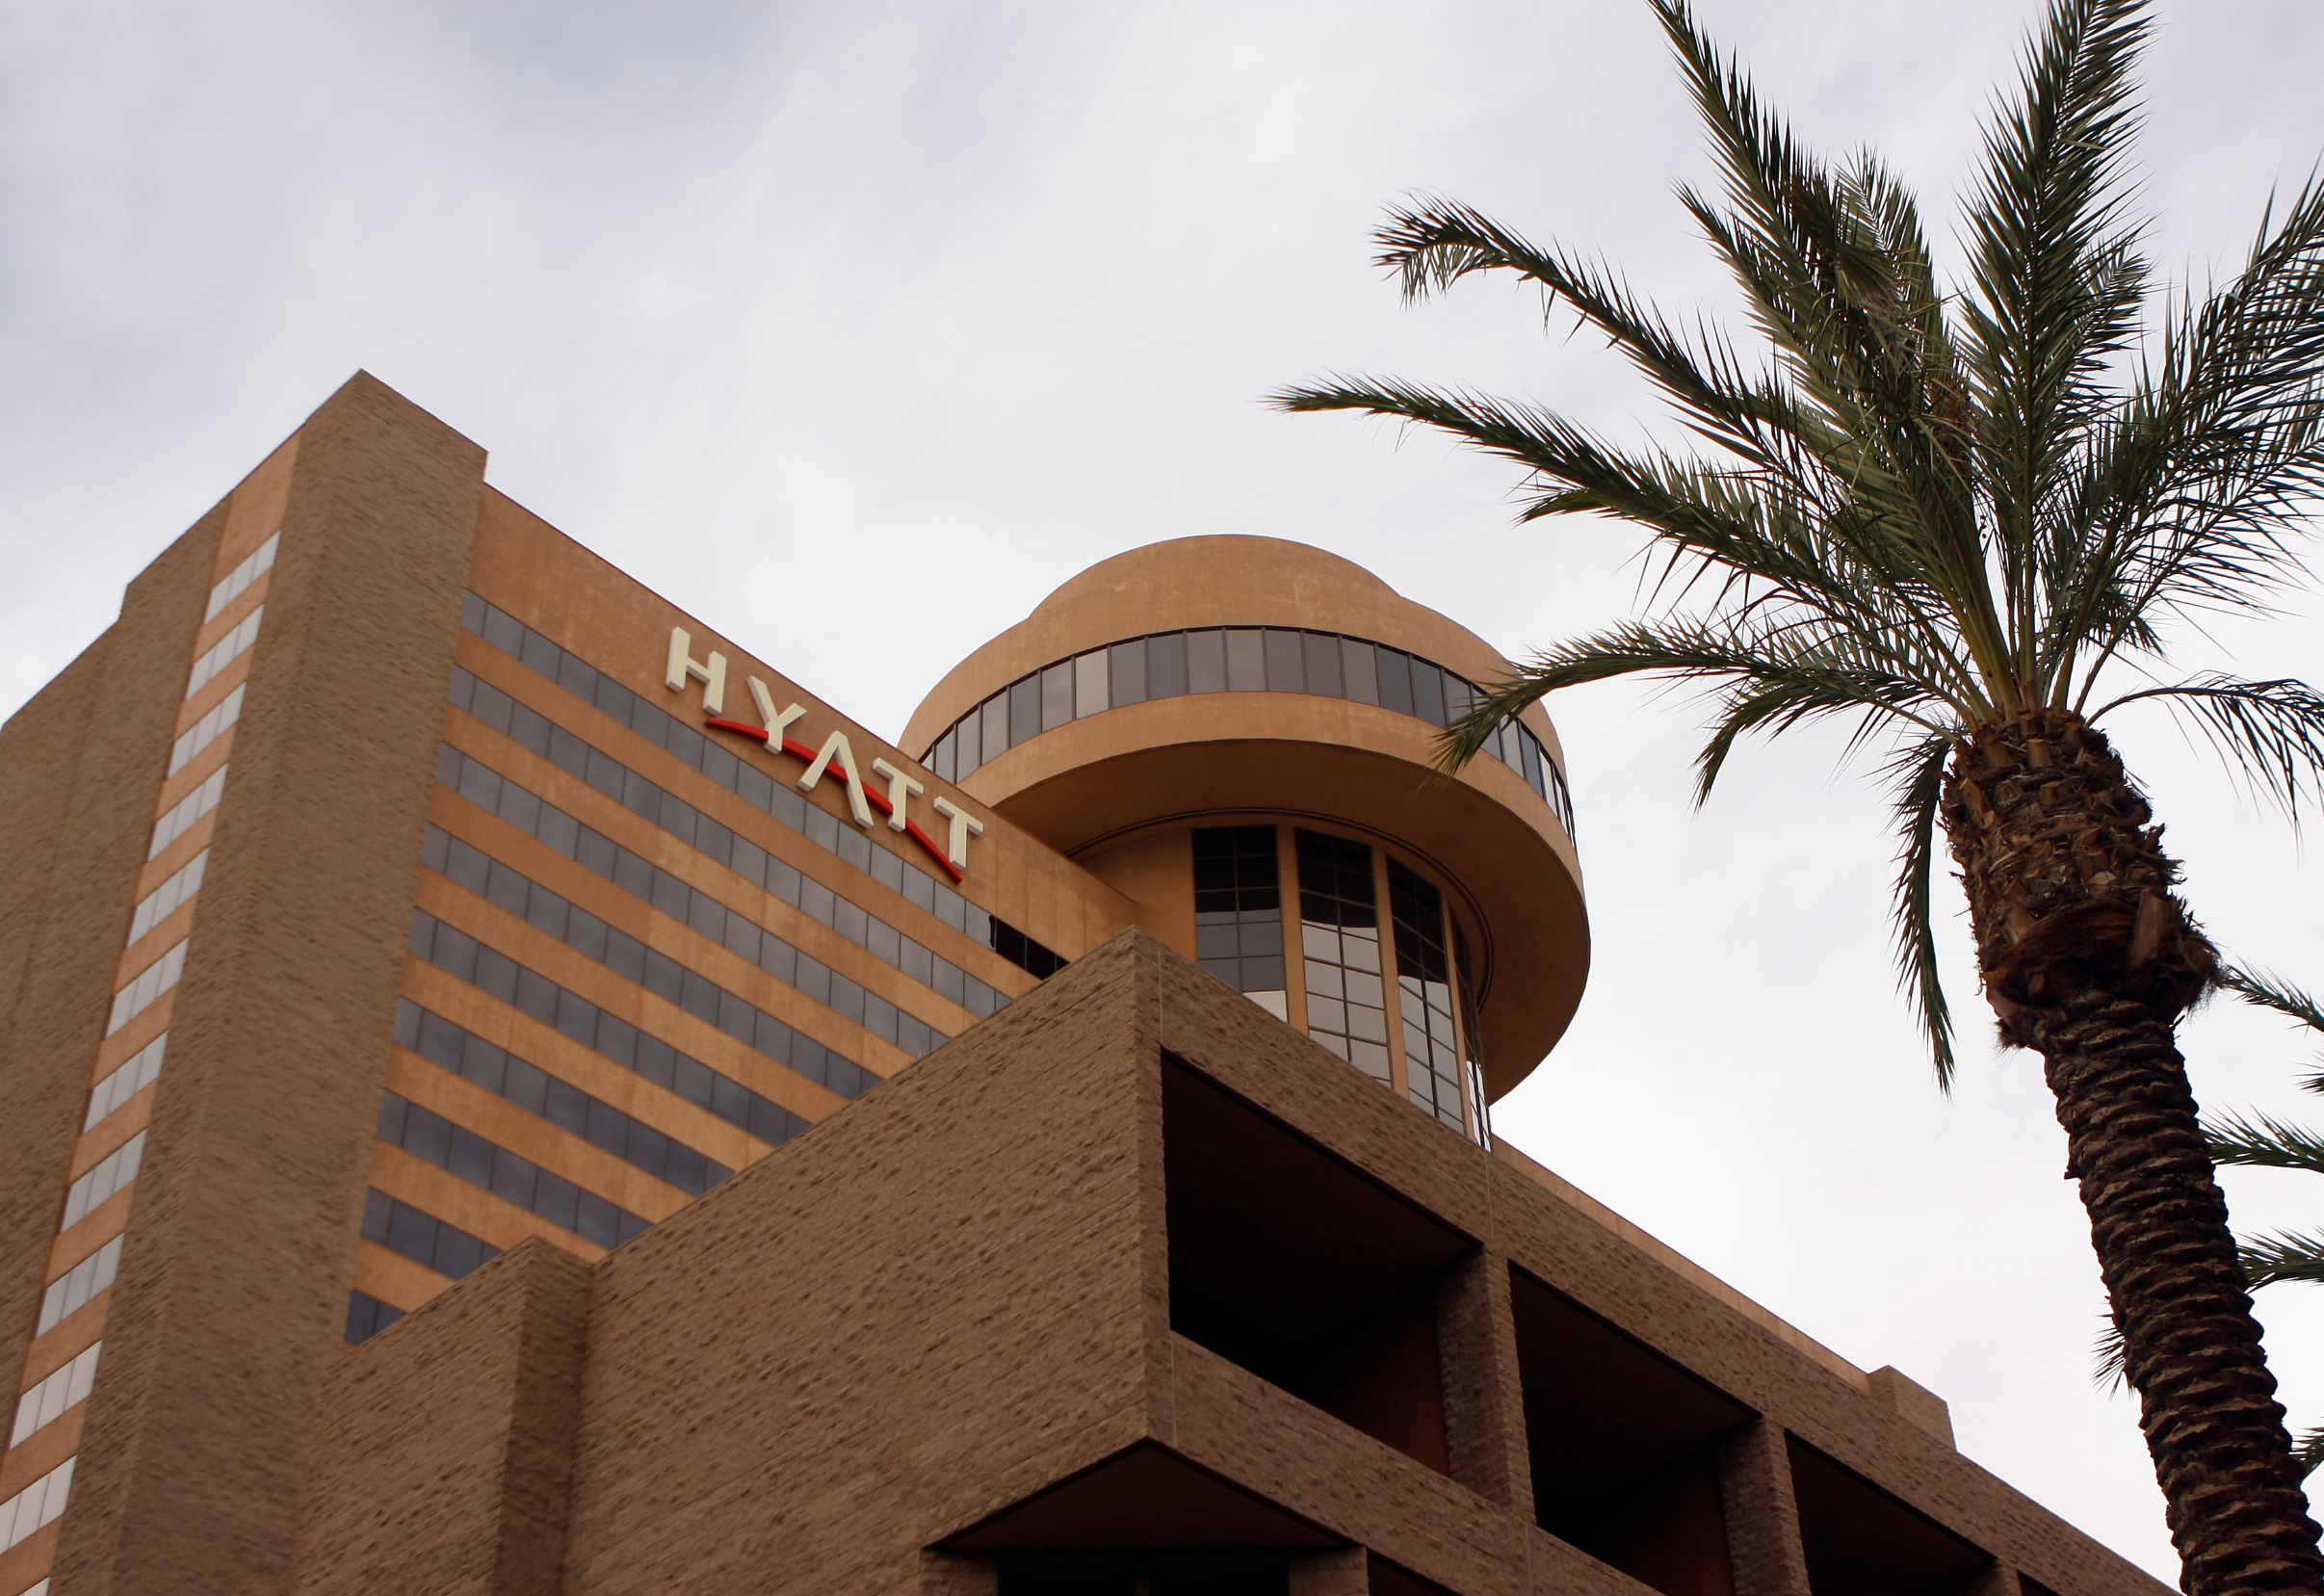 Signage for the Hyatt Hotel is advertised in Phoenix, Arizona November 4, 2009. Hyatt plans to sell 38 million shares for between  and  each under the ticker